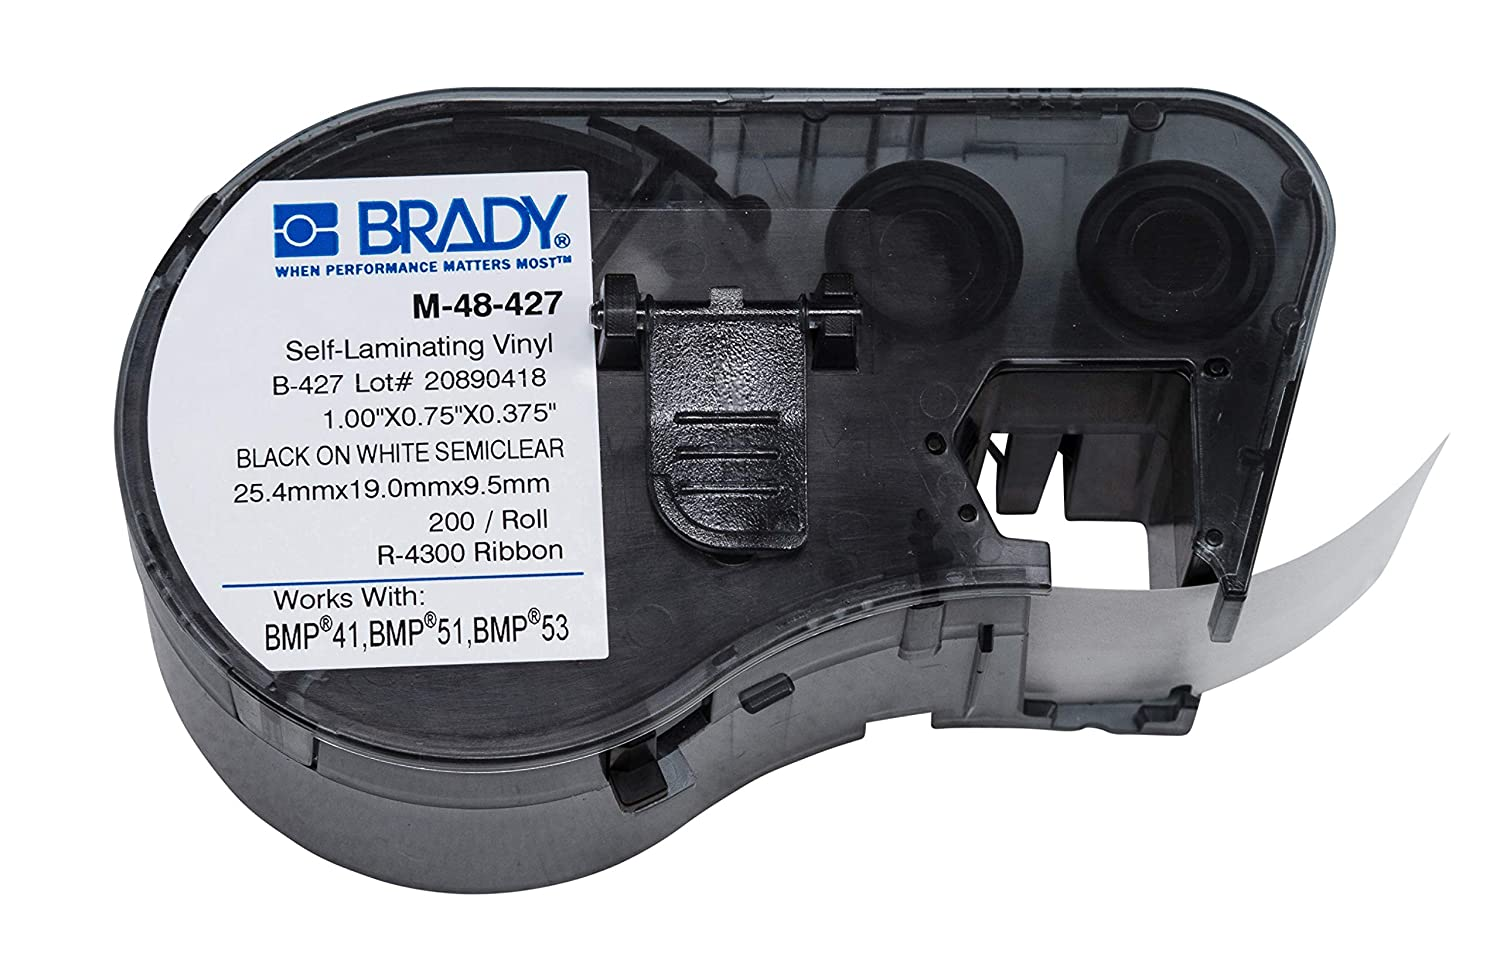 Brady Super beauty product restock quality top! - Year-end gift 131584 Self-Laminating Vinyl Tape on Black White Label